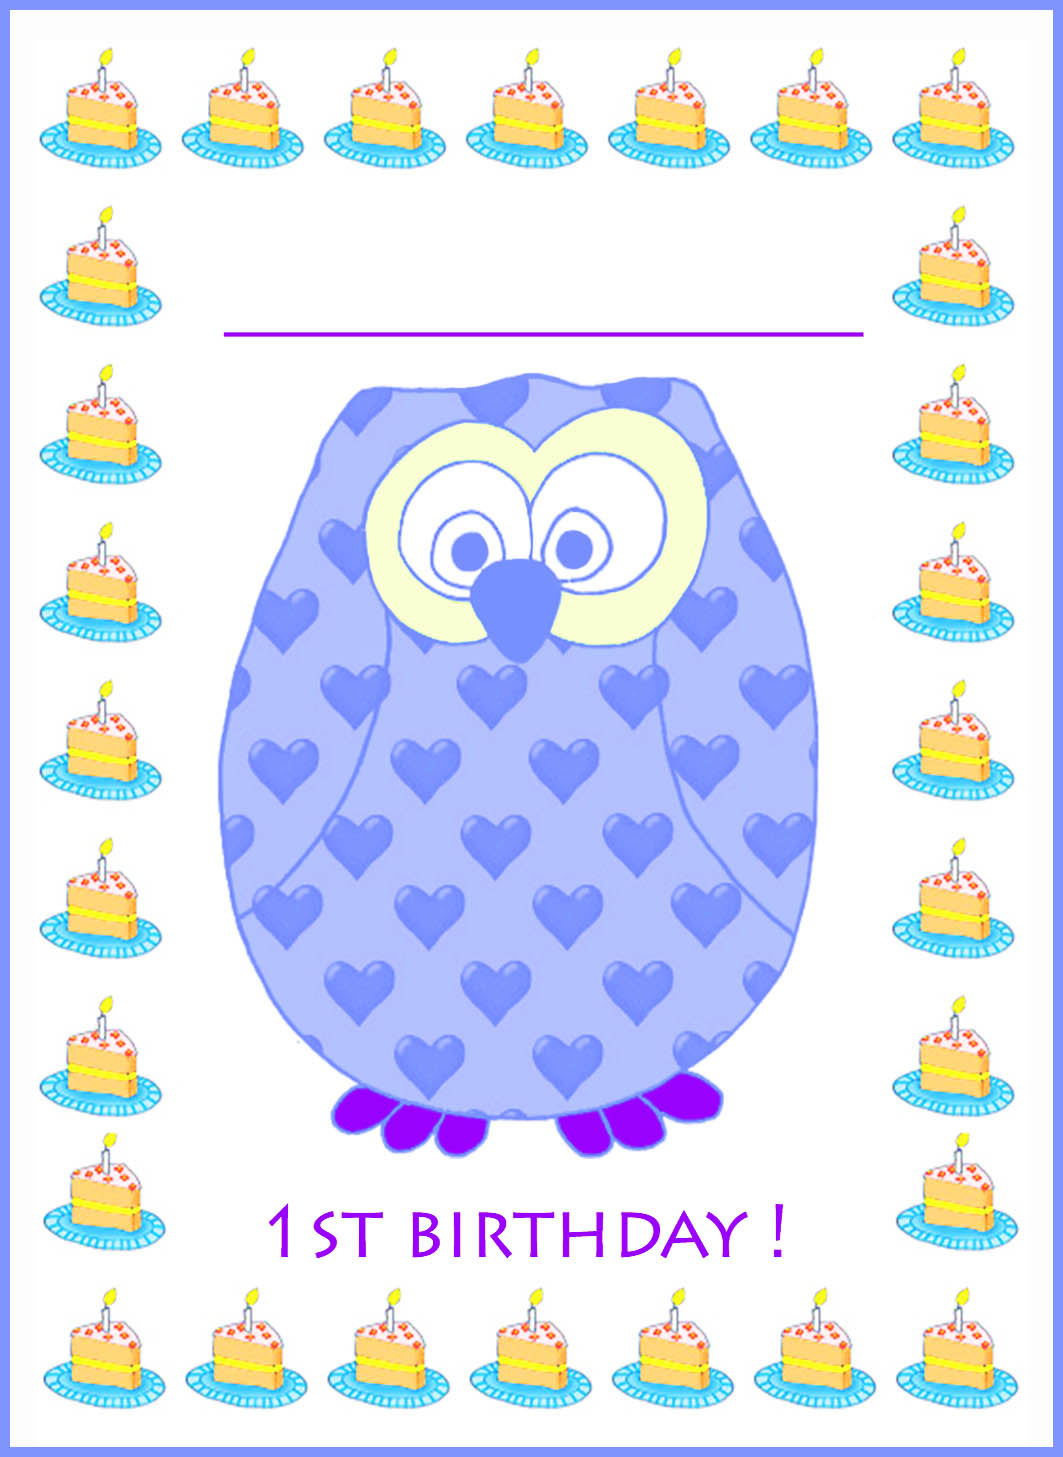 1st Birthday Invitations - Make your Own or Find a Template